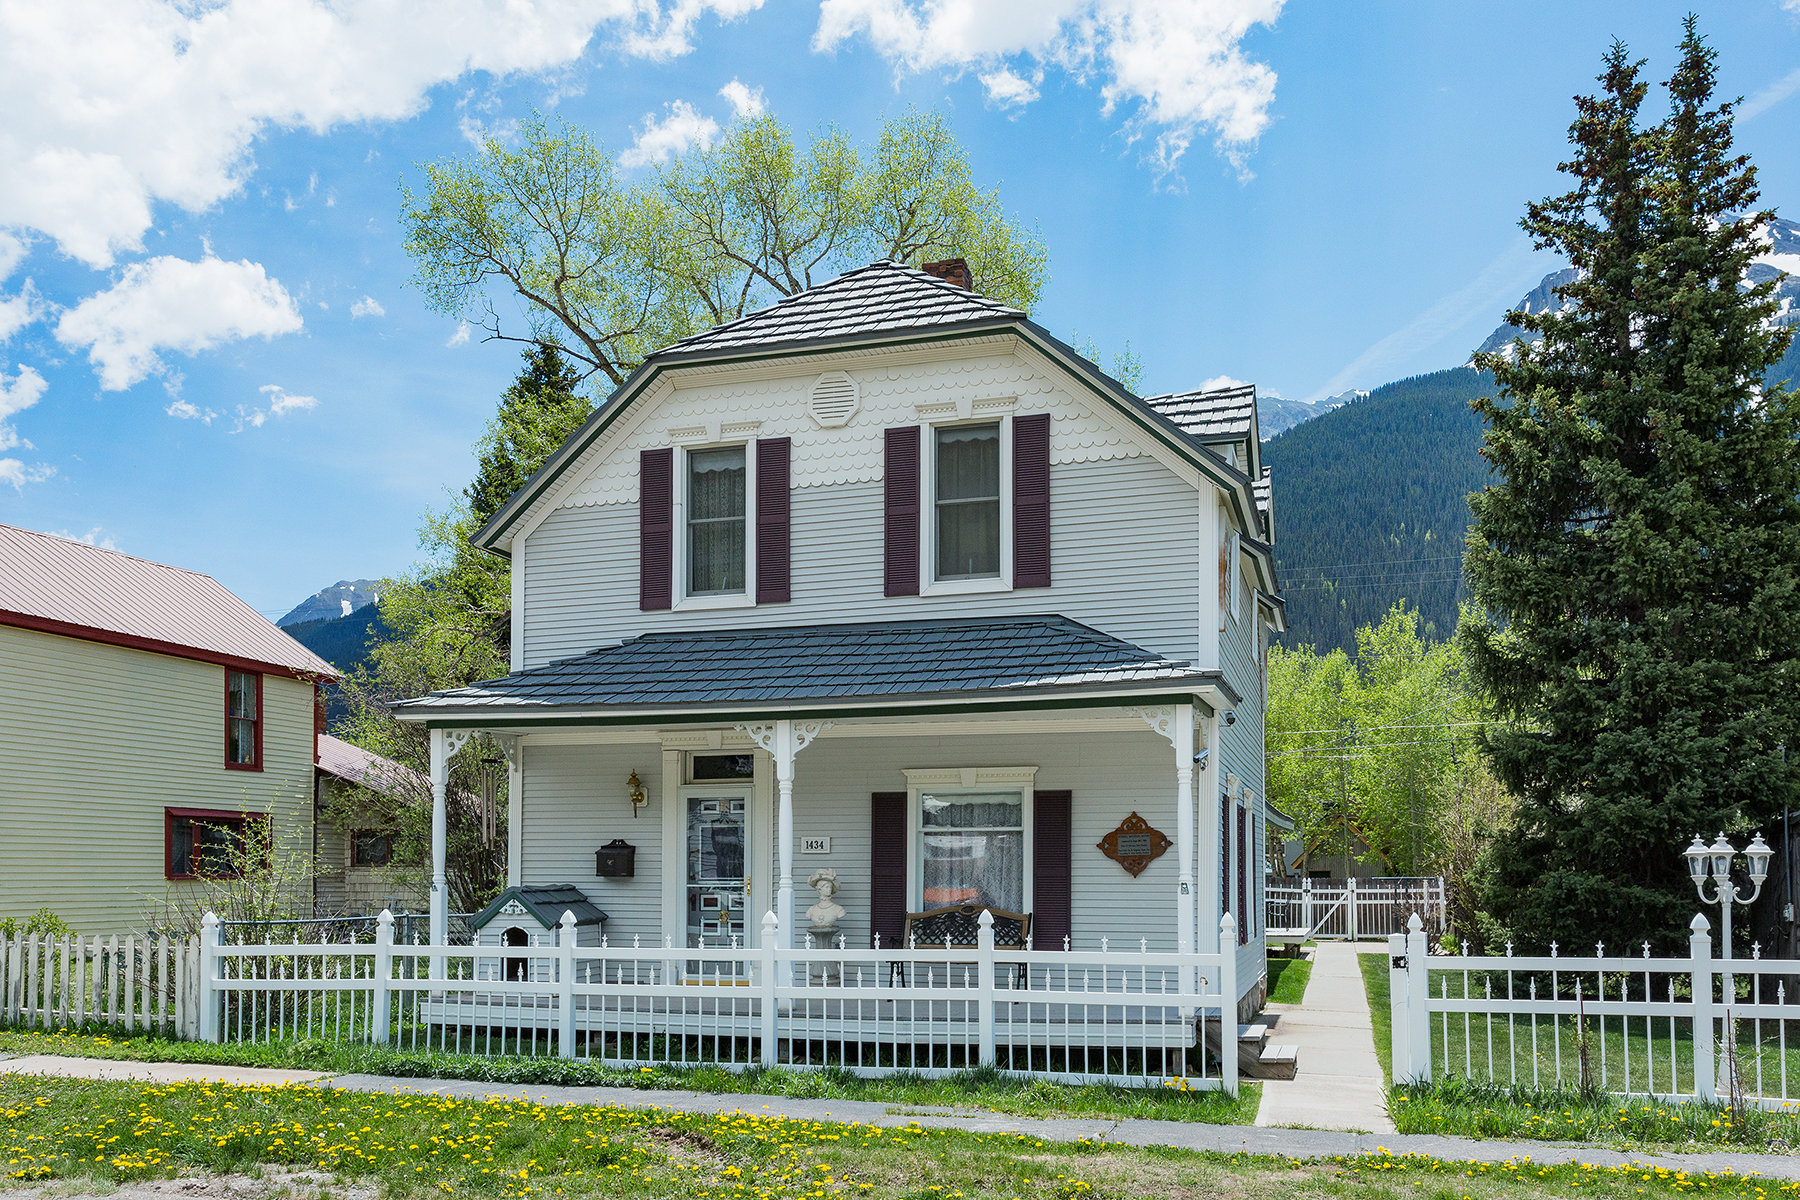 Additional photo for property listing at Kendall Mountain Manor 1434 Reese Street Silverton, Colorado 81433 United States